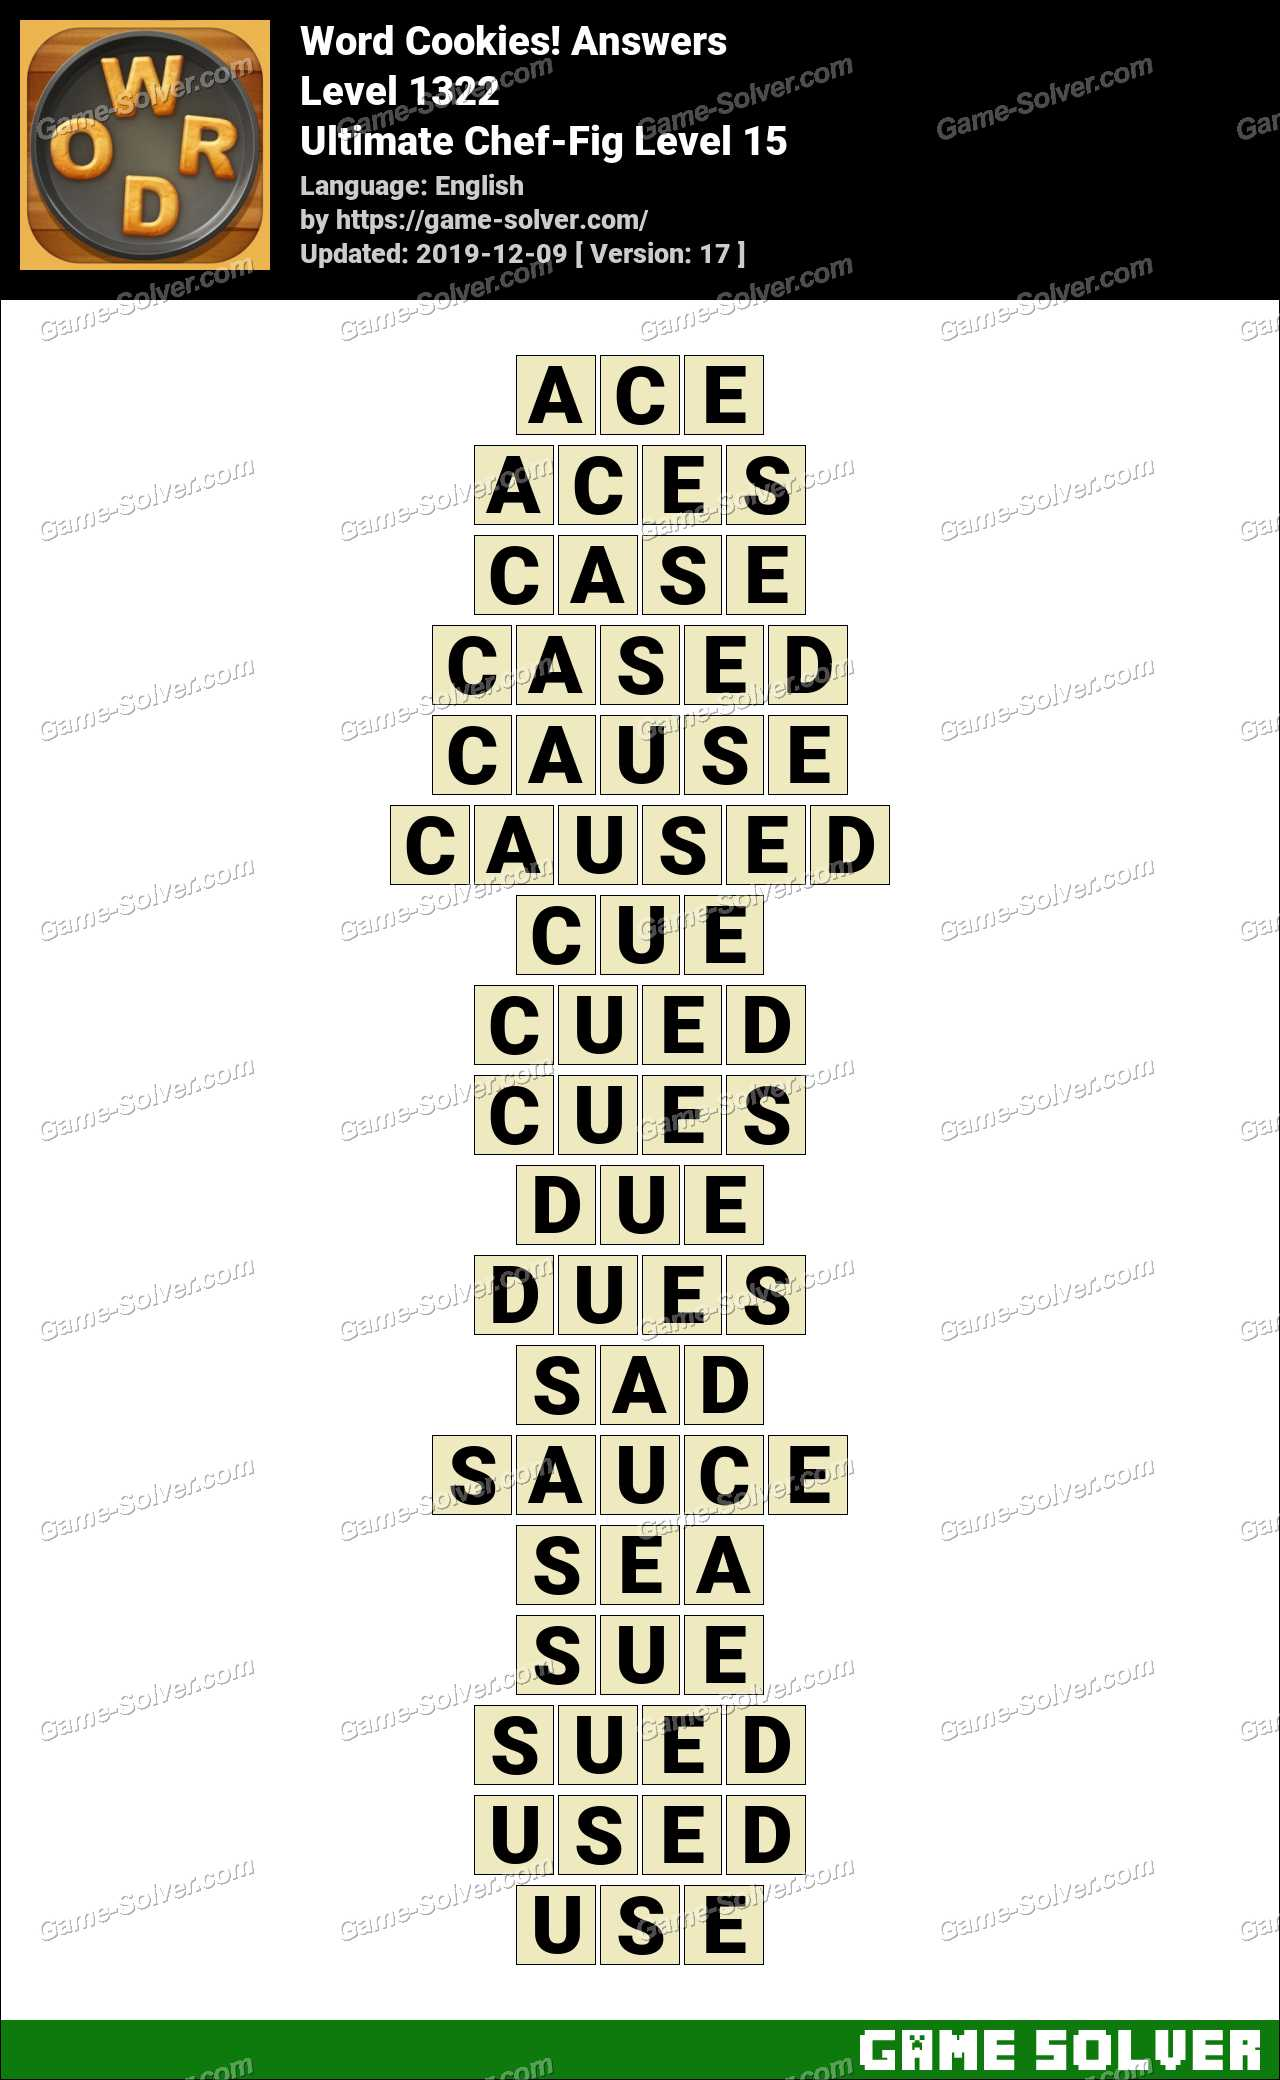 Word Cookies Ultimate Chef-Fig Level 15 Answers